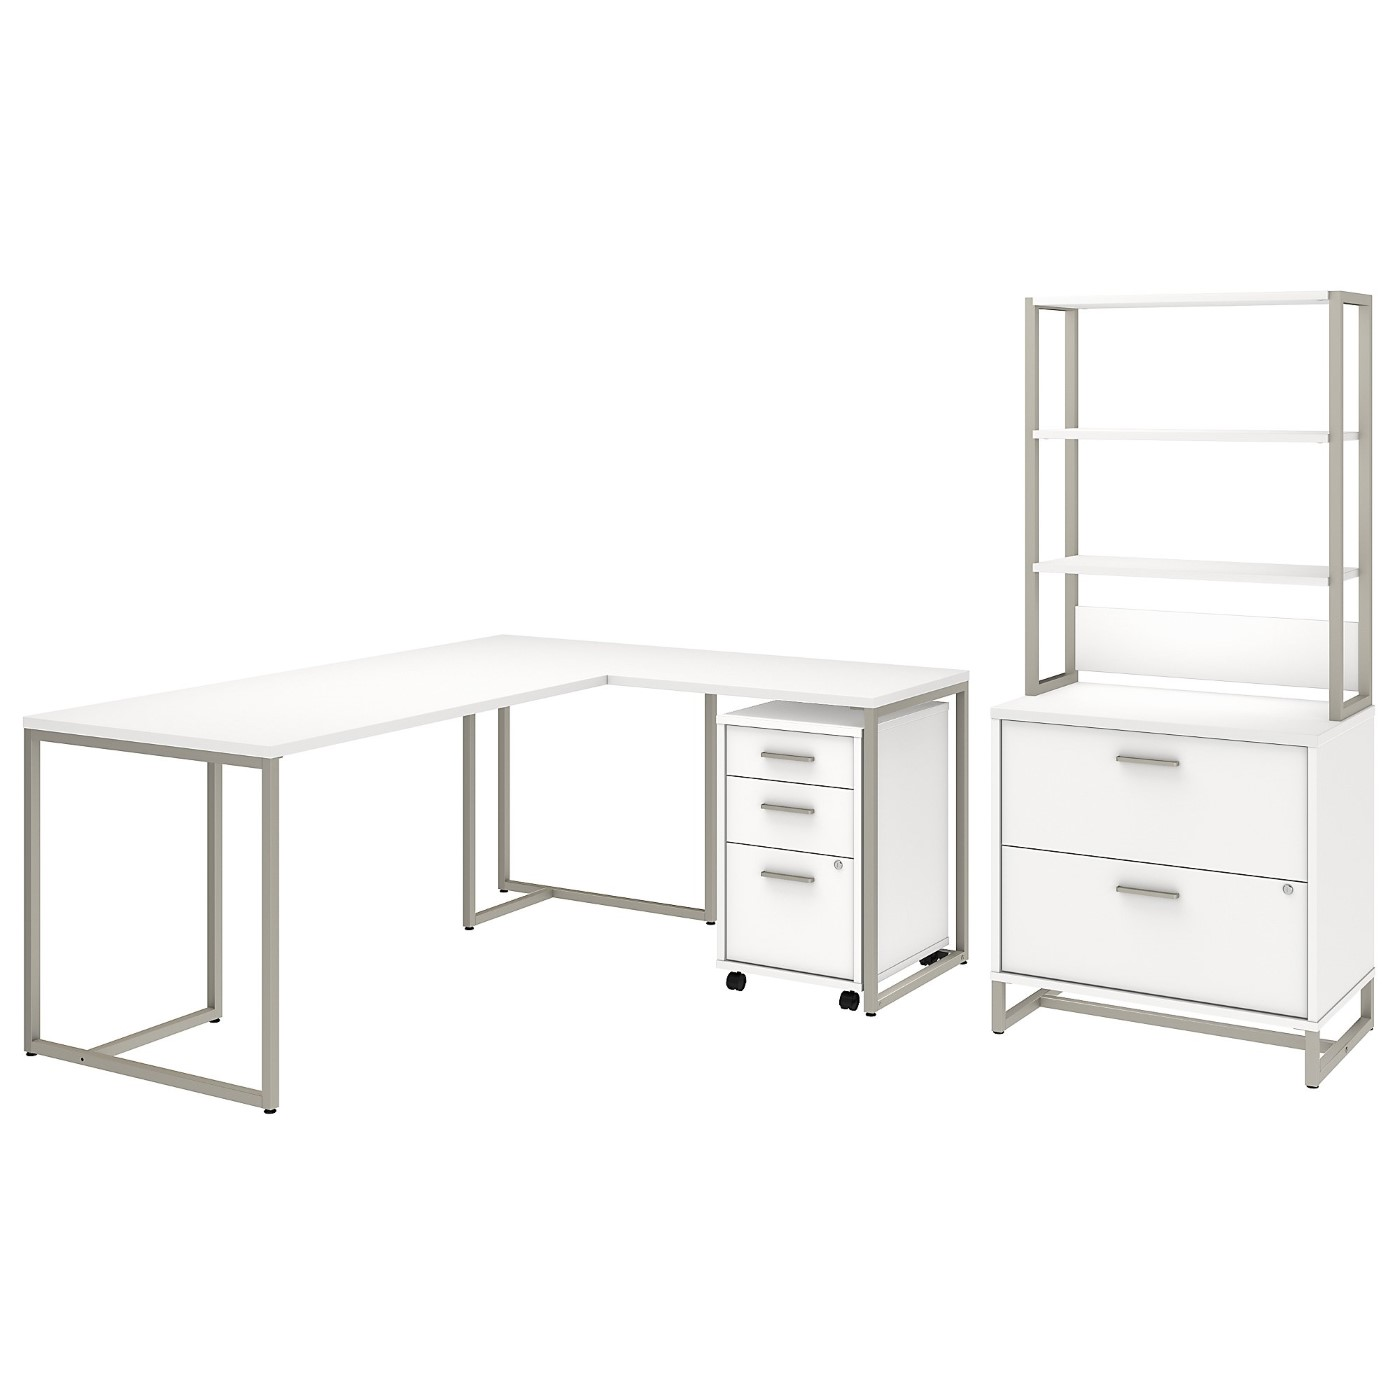 OFFICE BY KATHY IRELAND� METHOD 72W L SHAPED DESK WITH 30W RETURN, FILE CABINETS AND HUTCH. FREE SHIPPING